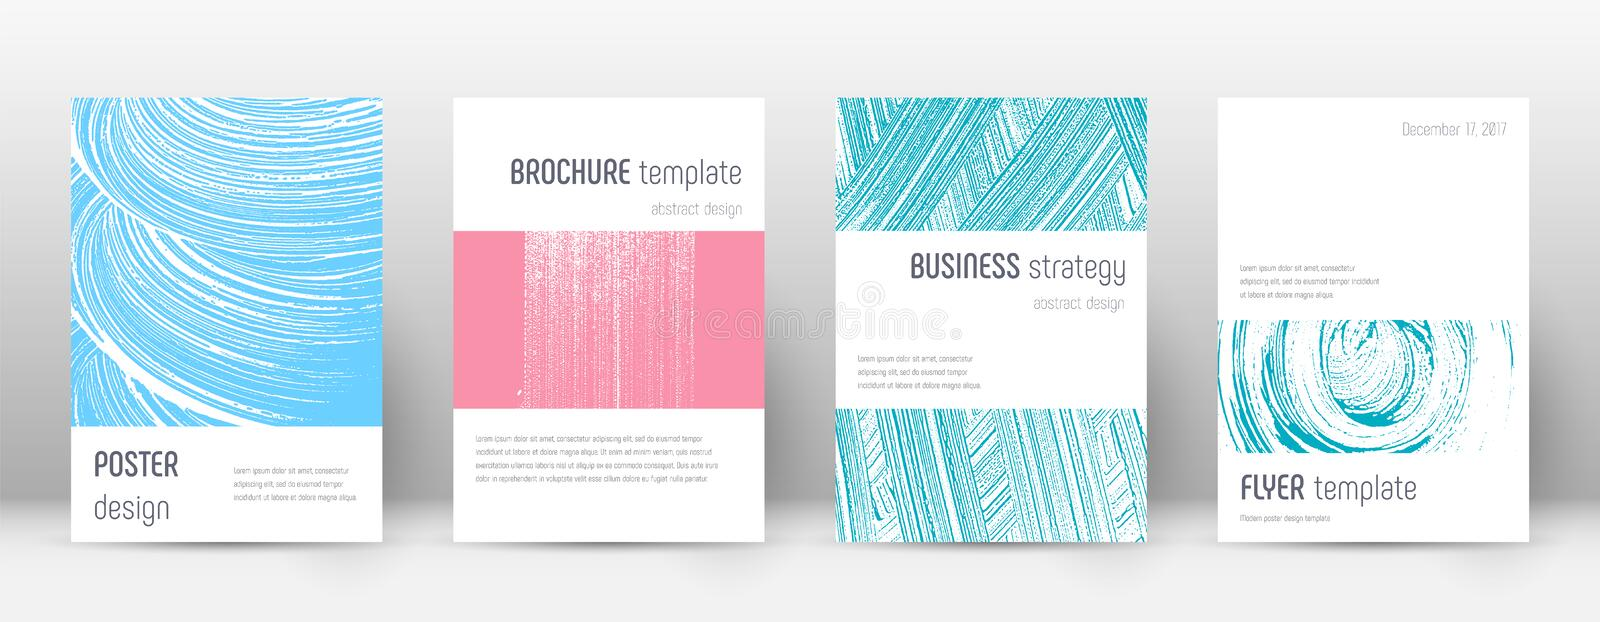 Cover page design template. Minimalistic brochure. Layout. Classy trendy abstract cover page. Pink and blue grunge texture background. Classic poster royalty free illustration